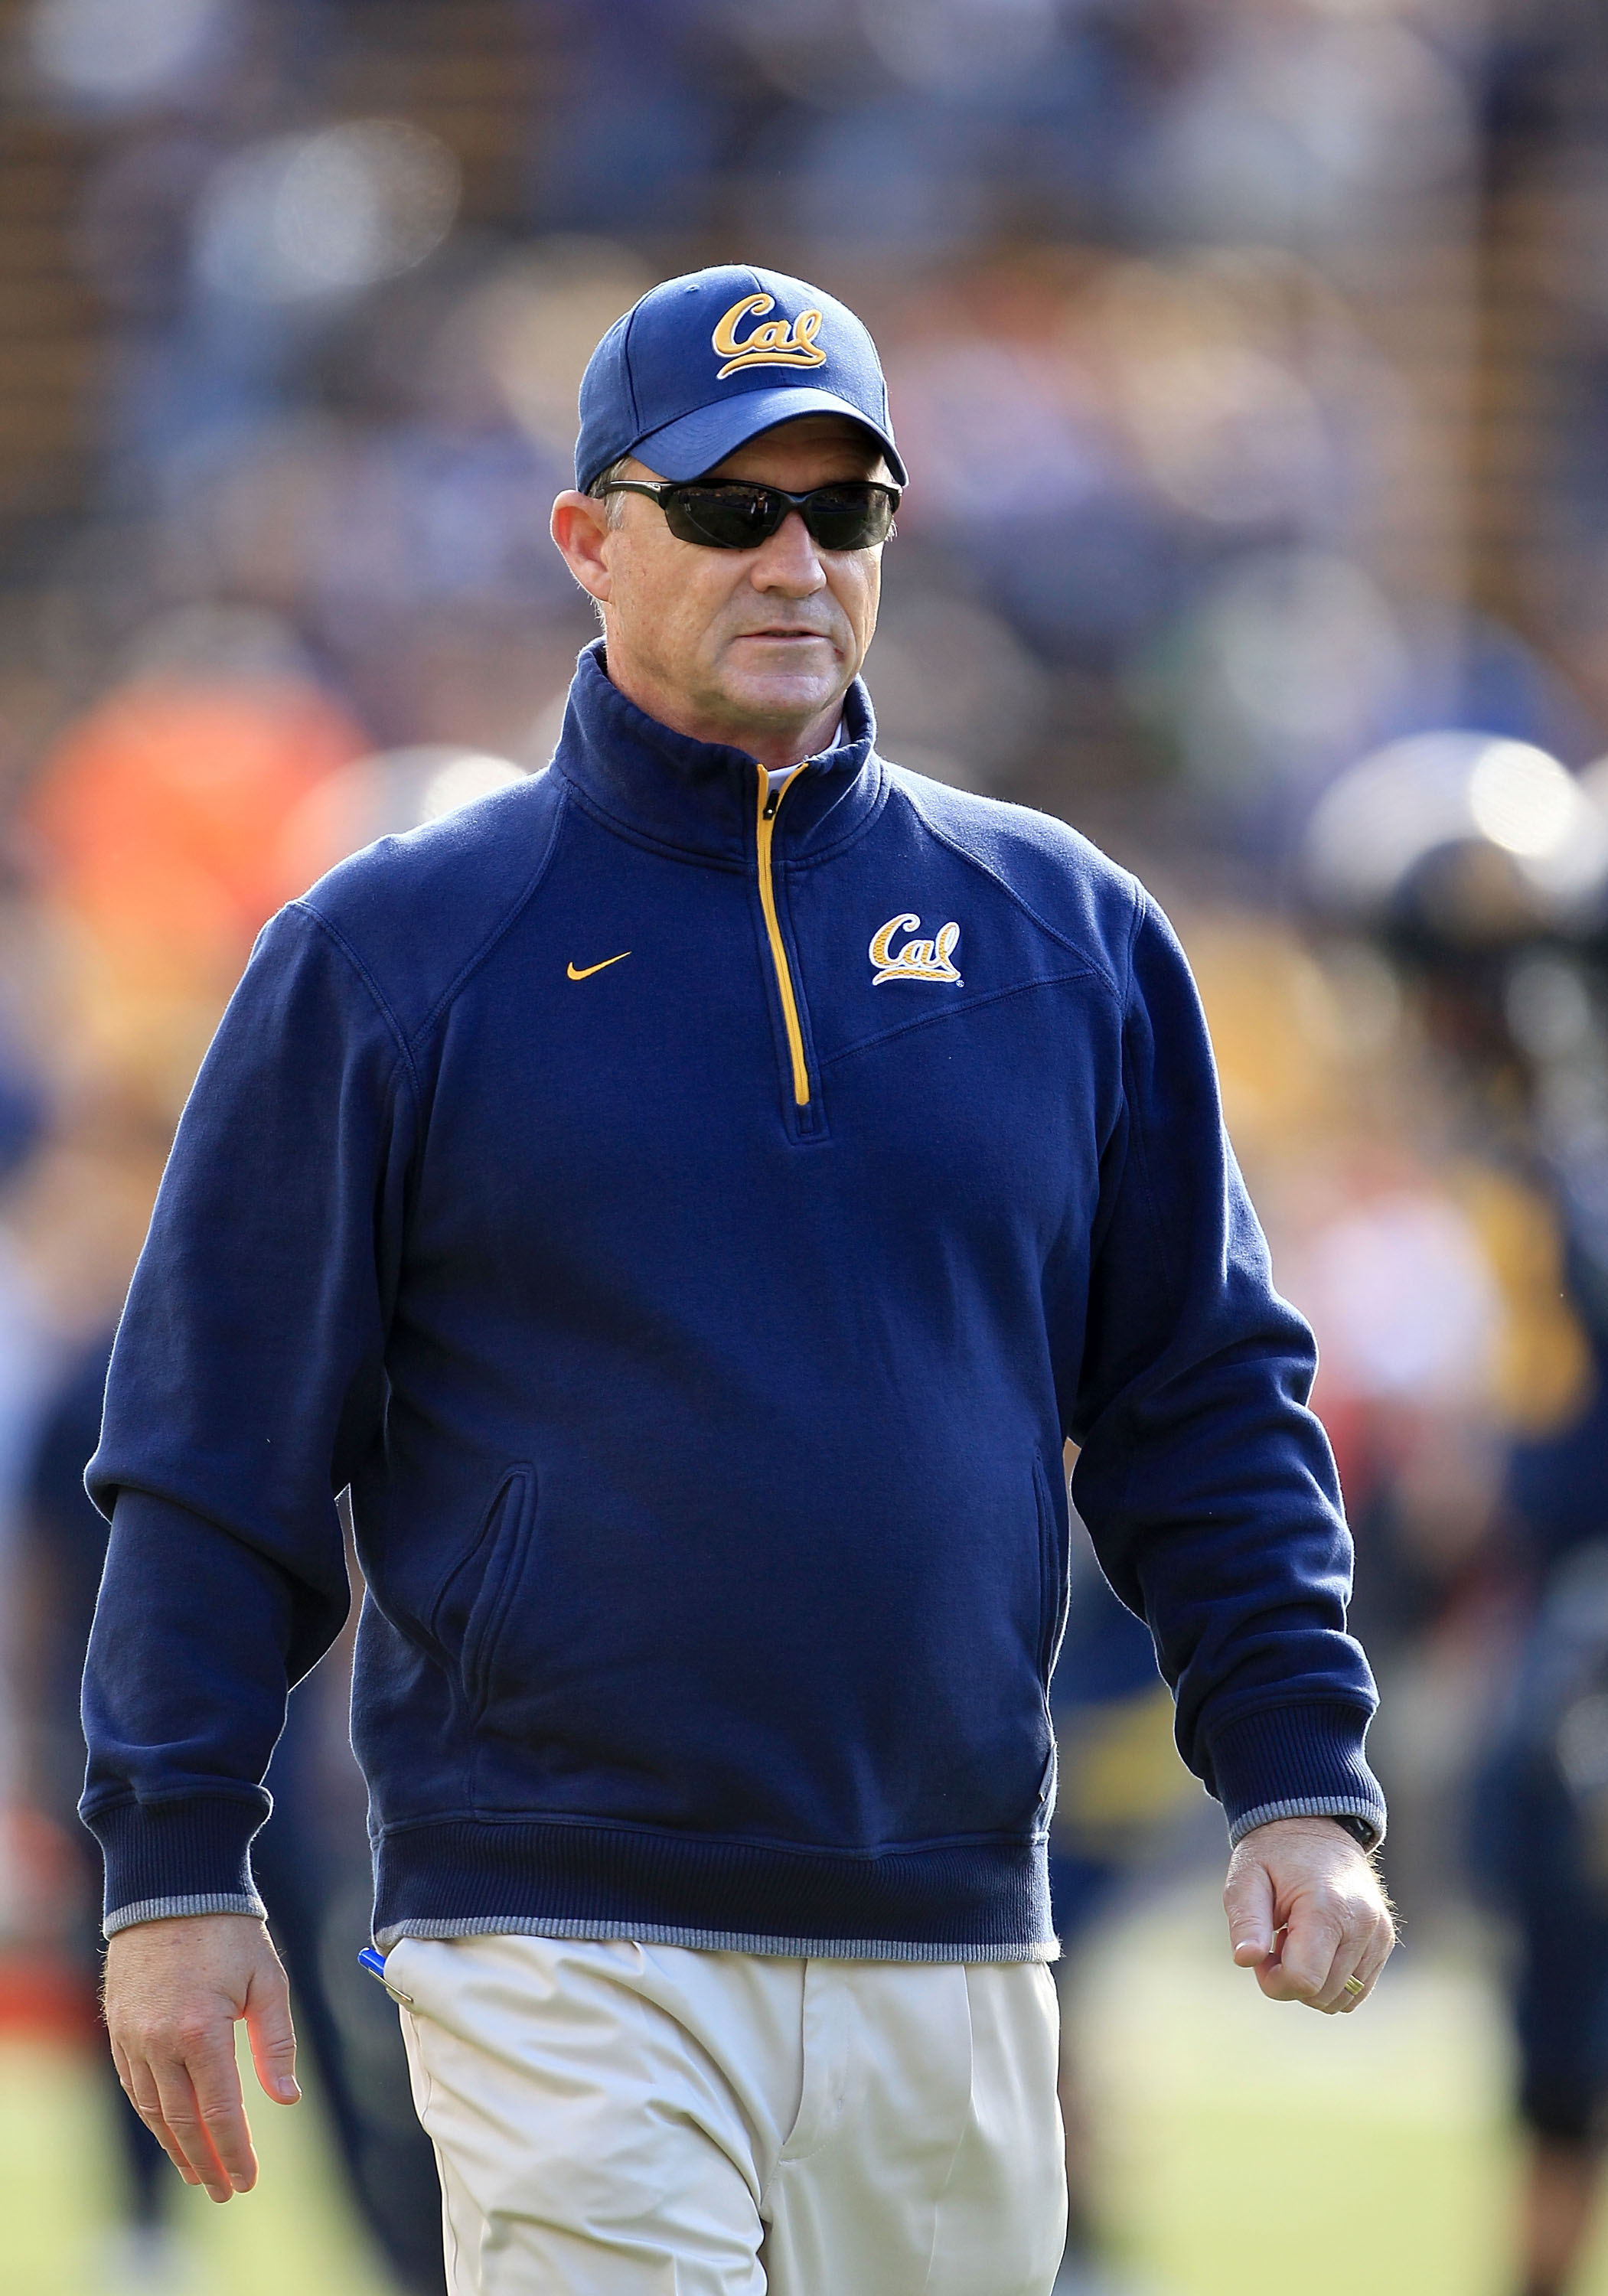 BERKELEY, CA - NOVEMBER 20:  Head coach Jeff Tedford of the California Golden Bears watches his team warm up before their game against the Stanford Cardinal at California Memorial Stadium on November 20, 2010 in Berkeley, California.  (Photo by Ezra Shaw/